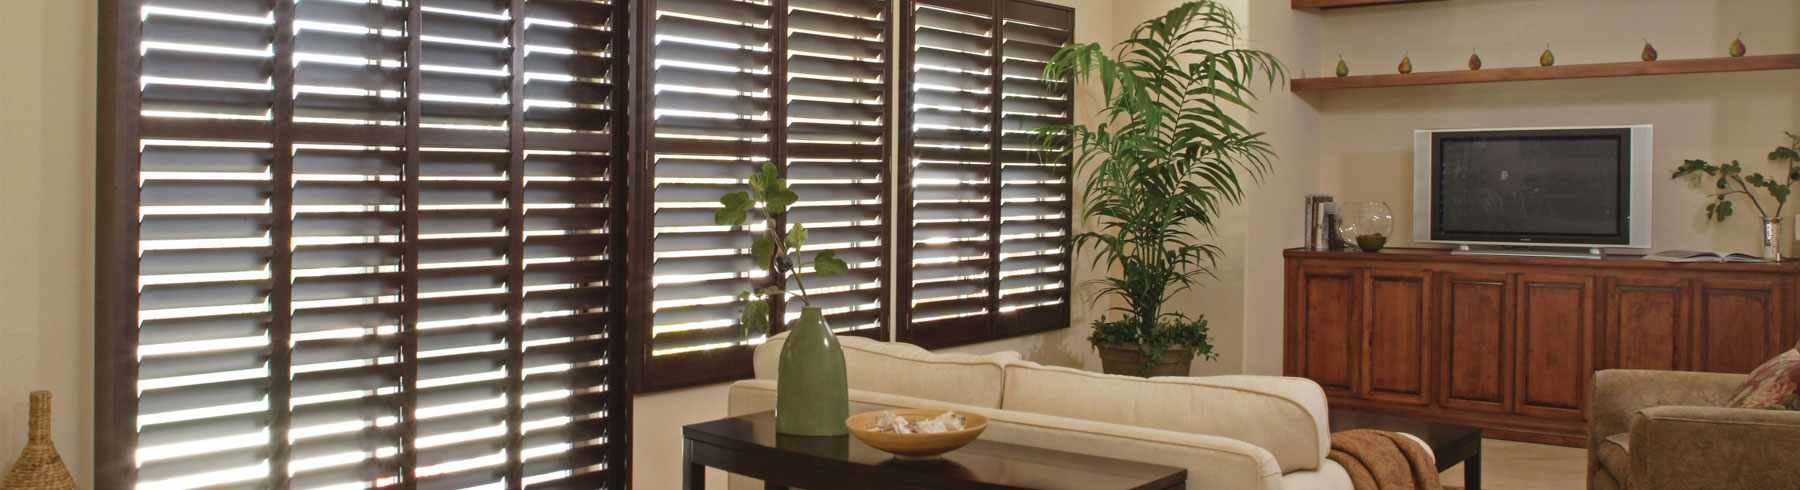 Window Blinds And Shades Awesome Window Blinds With Latest Best Ideas About Kitchen Blinds On